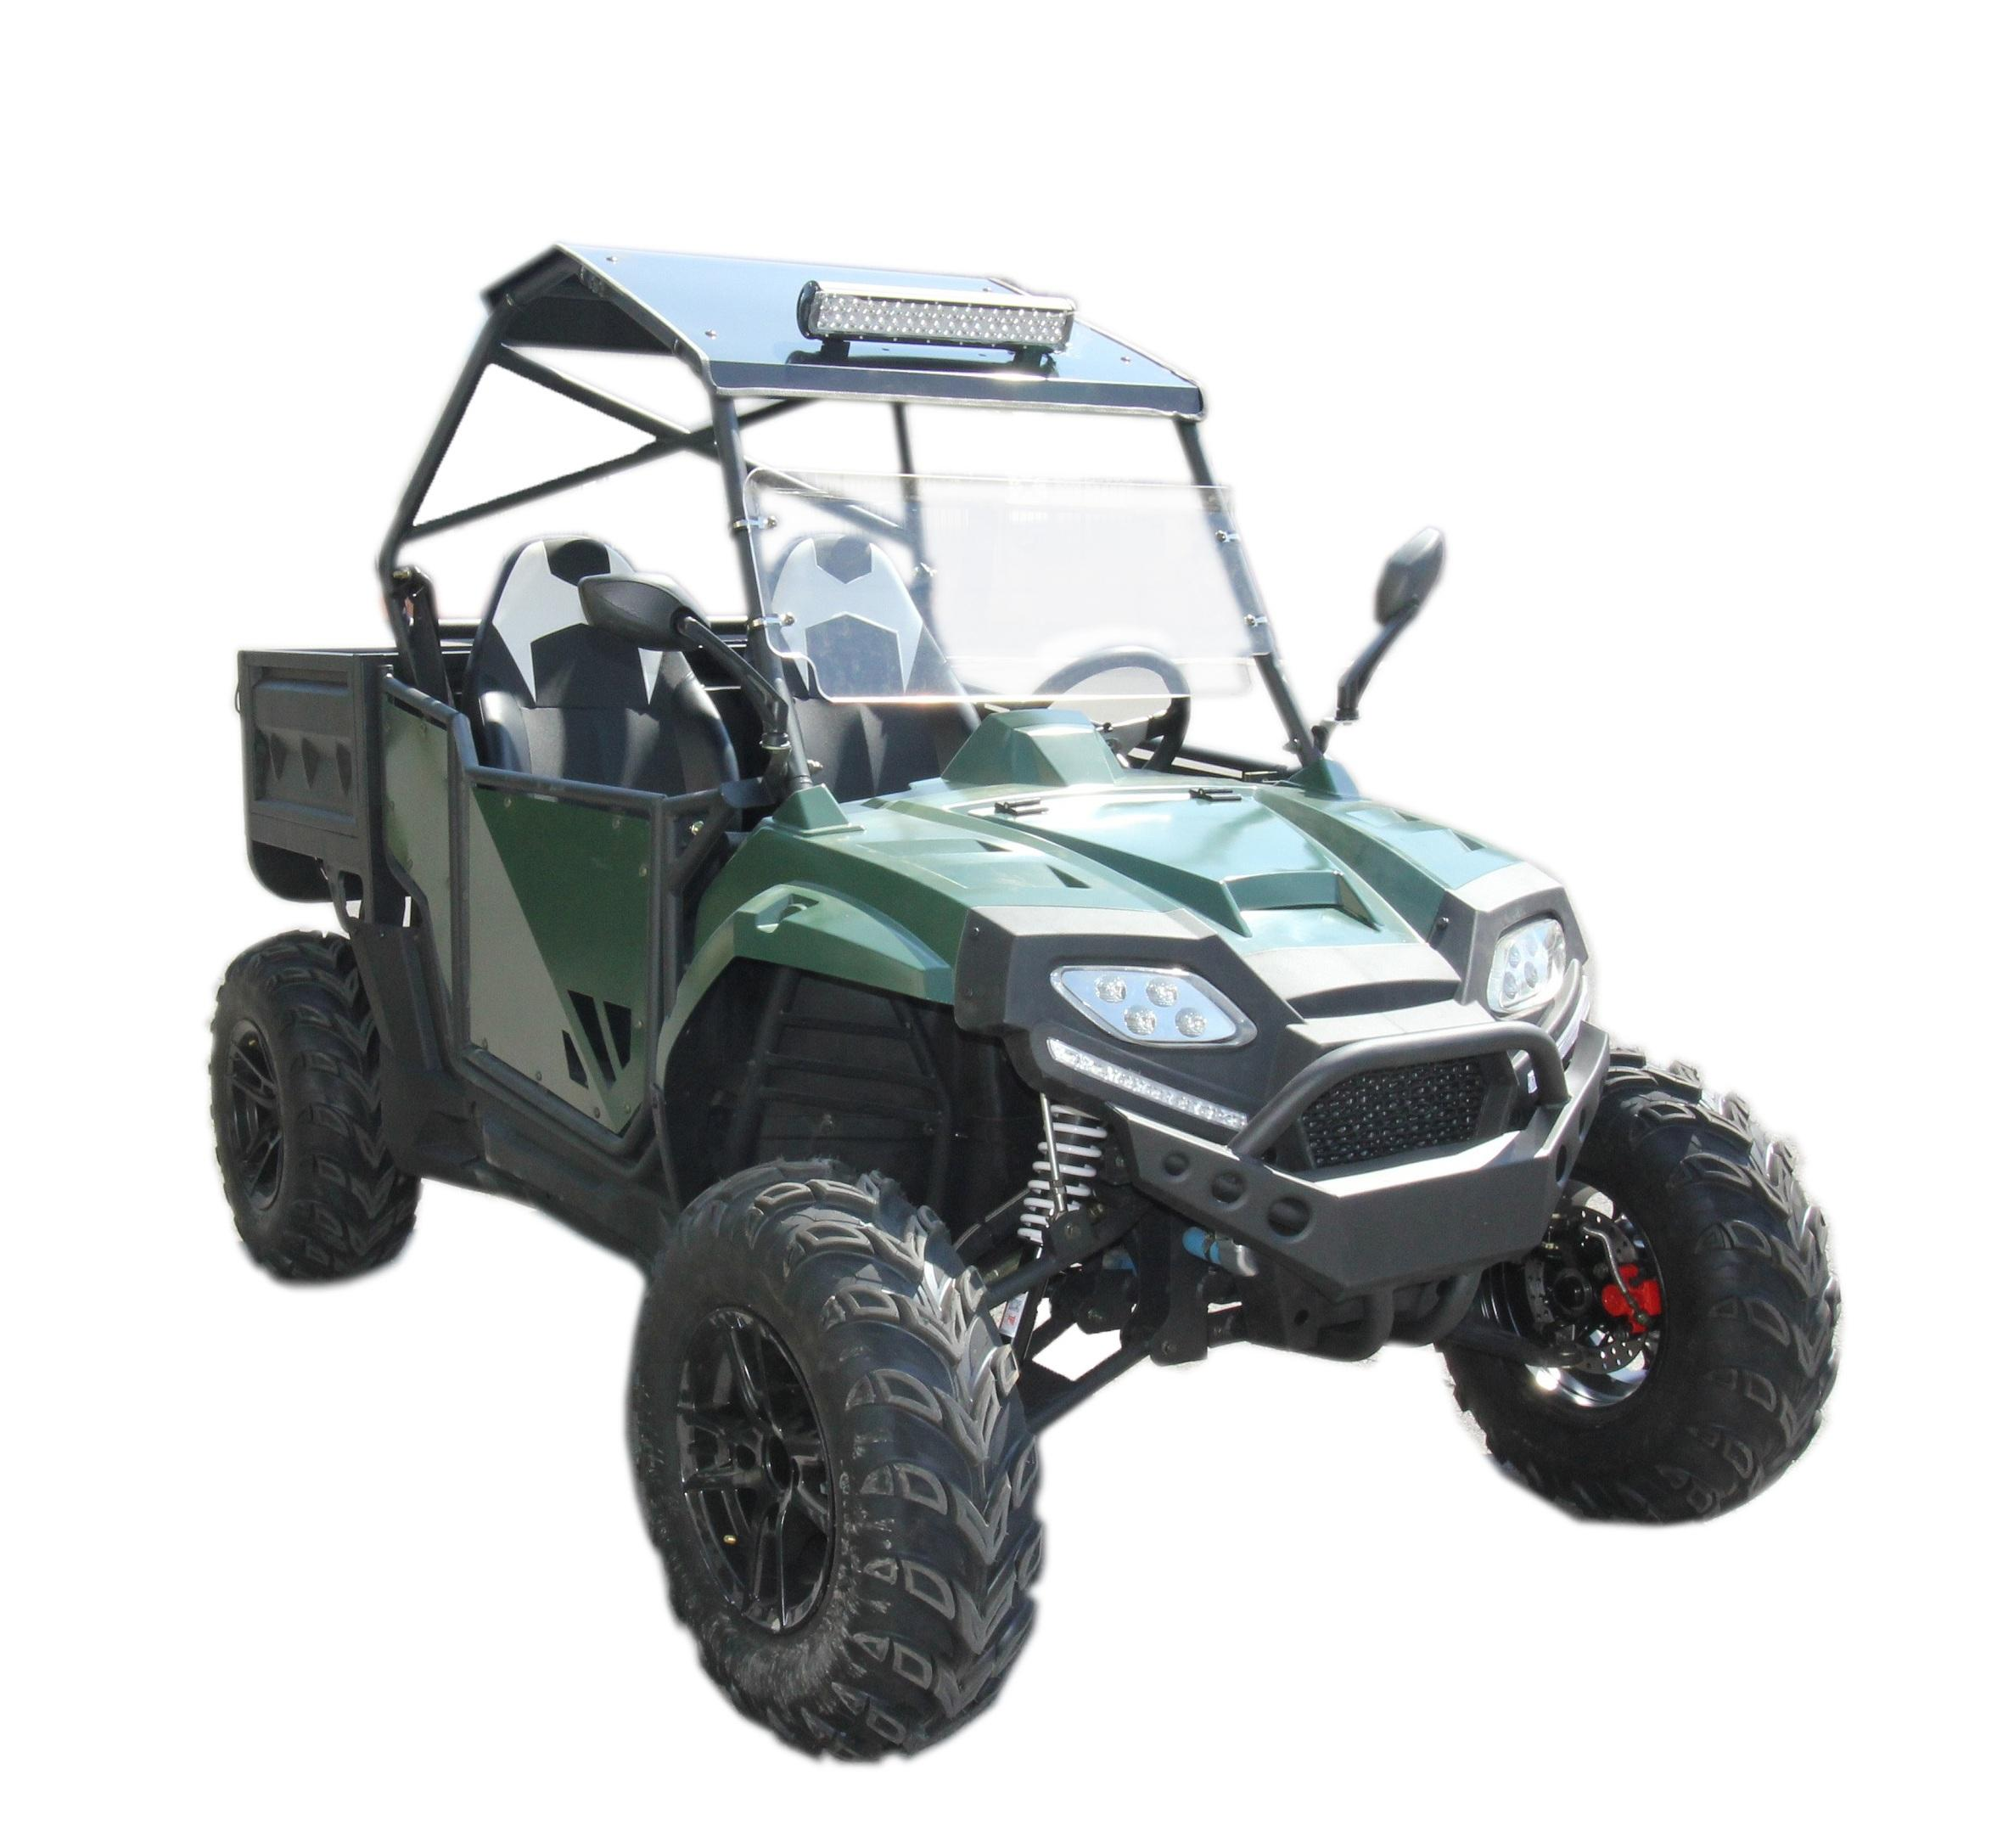 FANGPOWER all terrain vehicle adult utvs 400cc hunting buggy